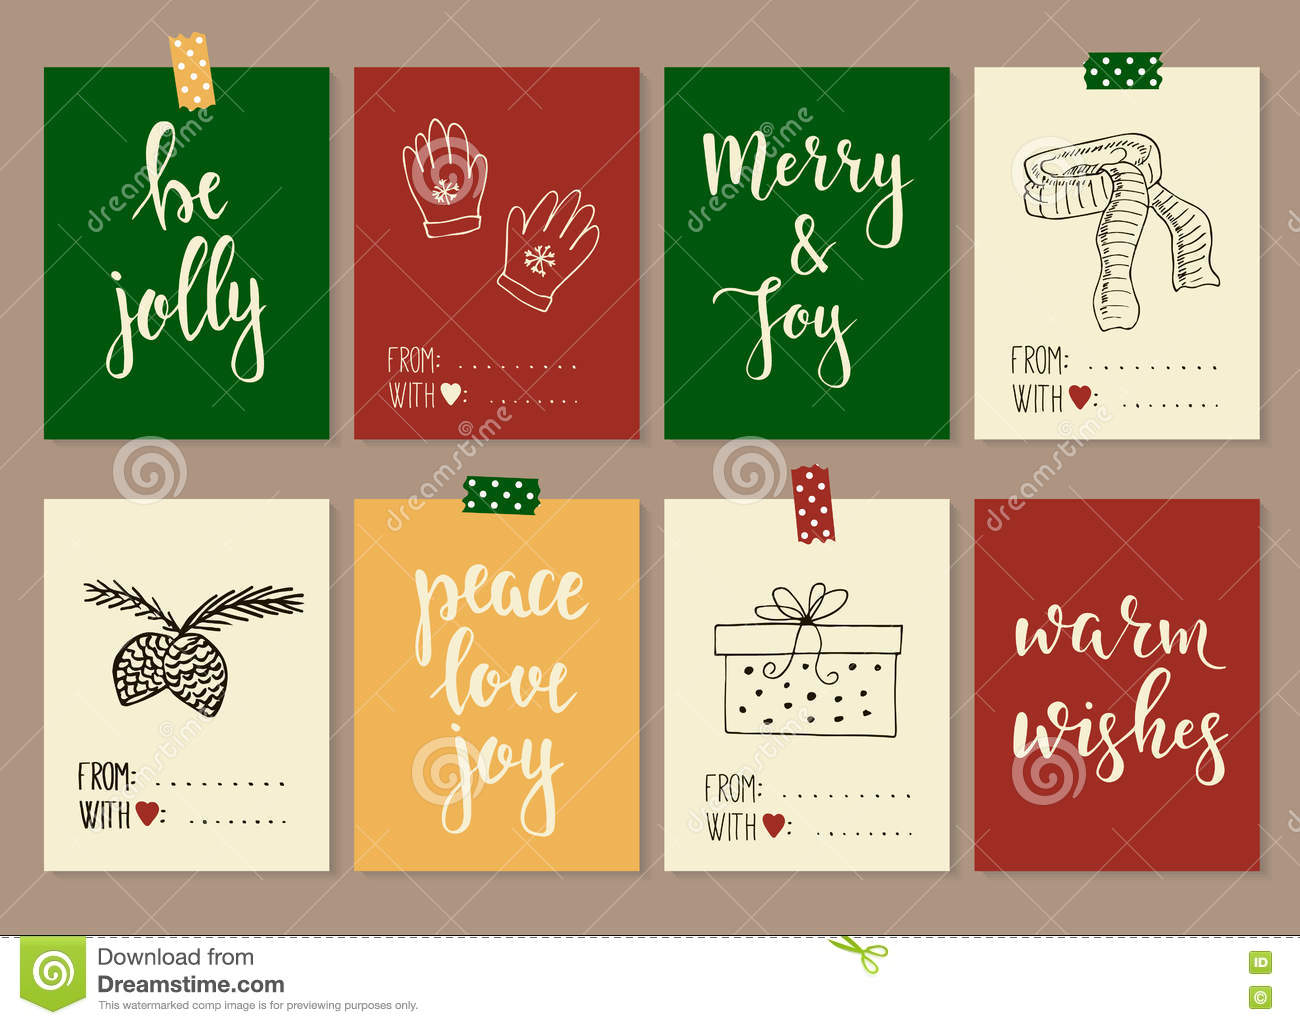 merry christmas and happy new year vintage gift tags cards with calligraphy